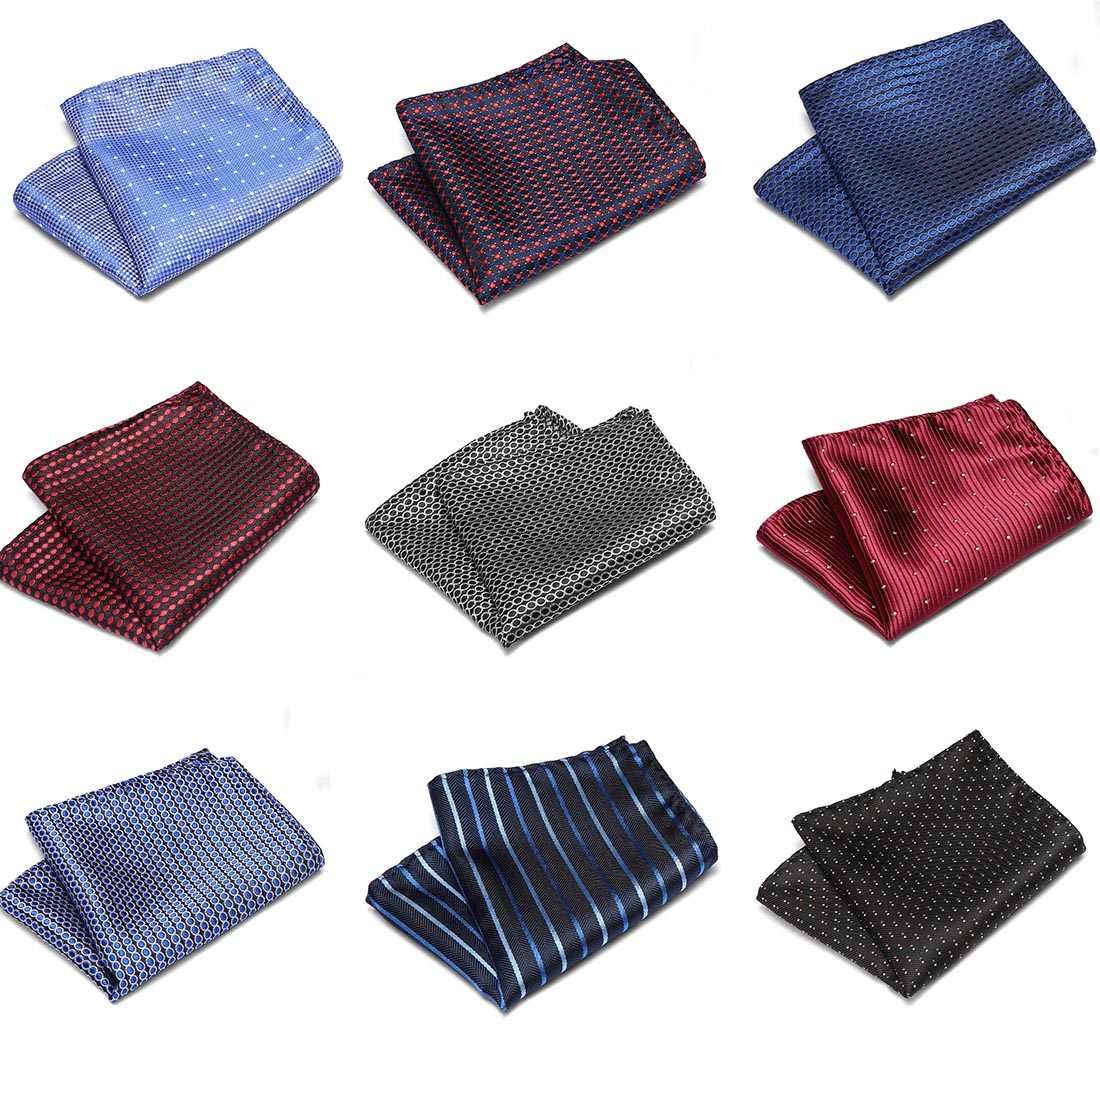 Luxury Men's Handkerchief Polka Dot Striped Floral Printed Hankies Silk Hanky Business Wedding Pocket Square Chest Towel 22*22CM